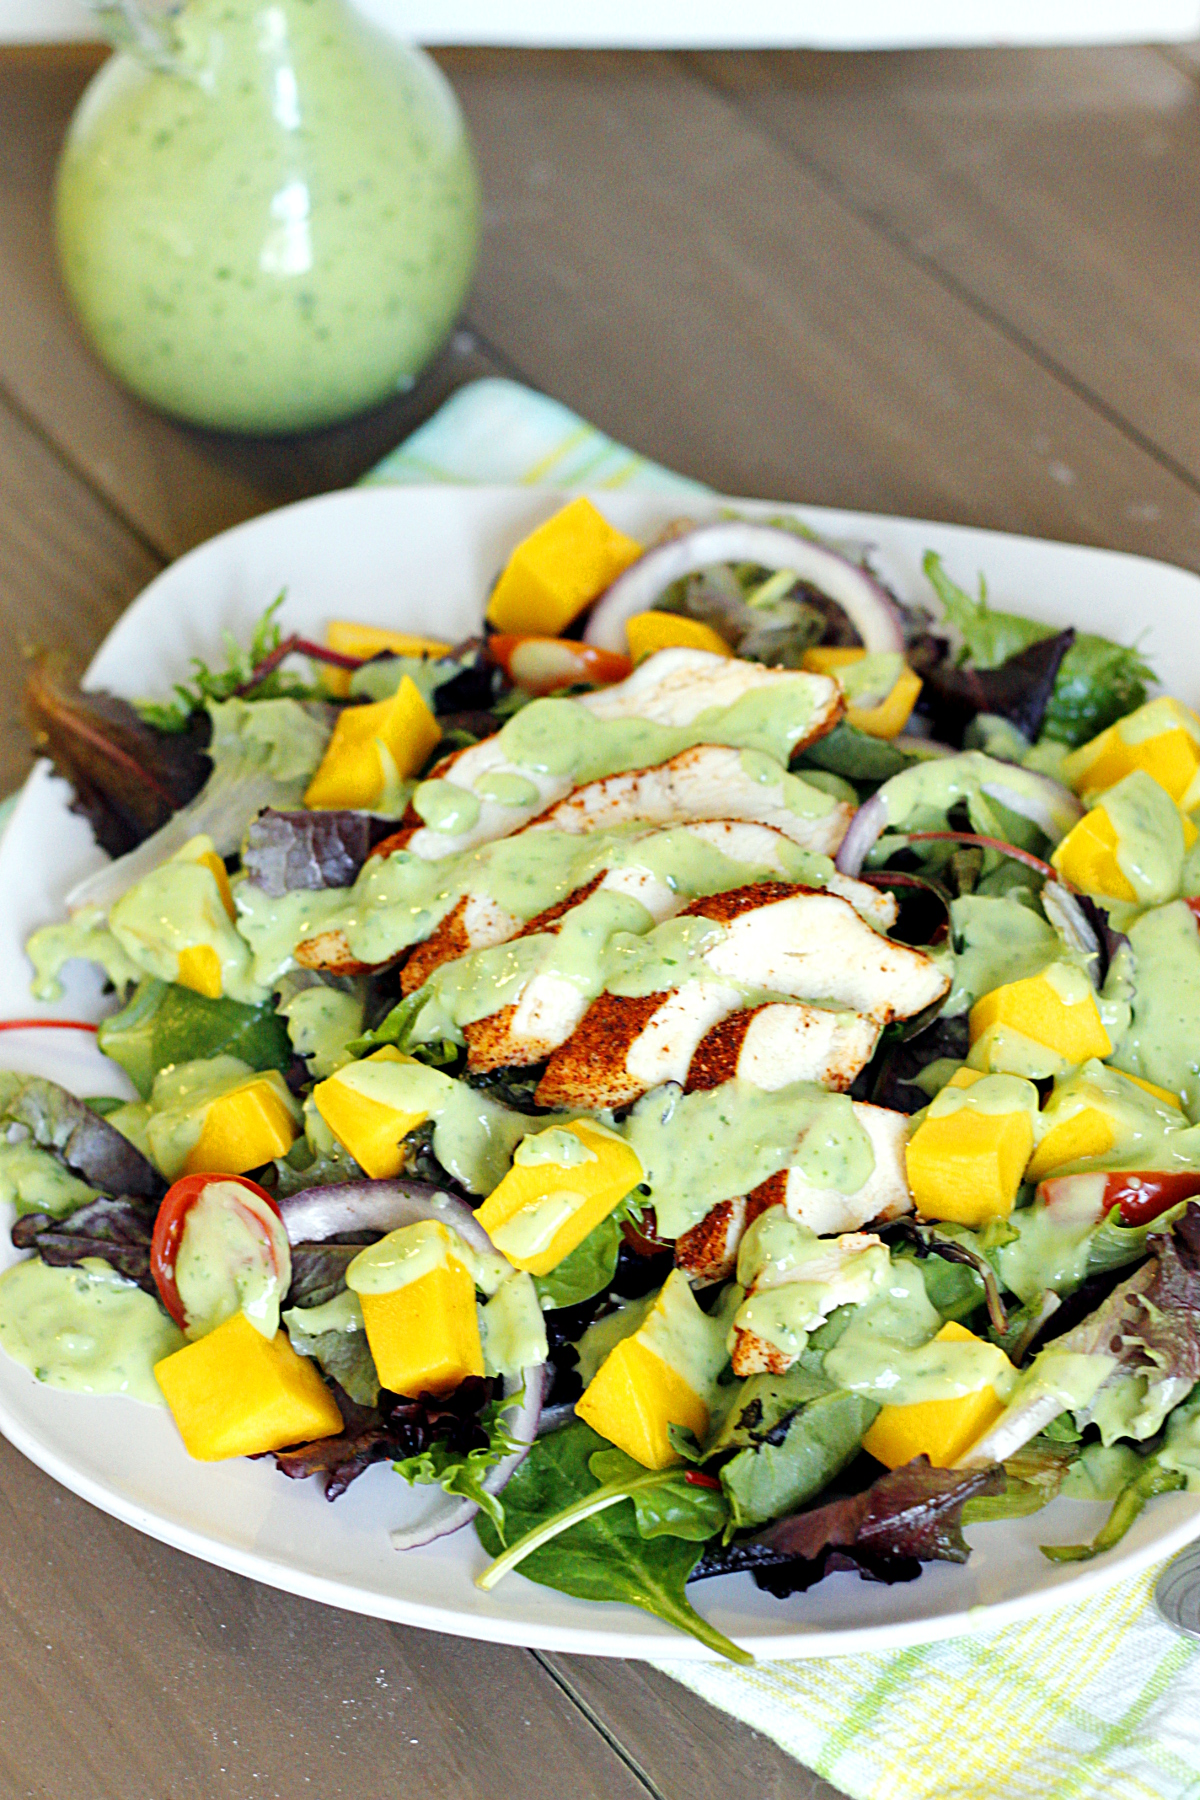 Blackened Chicken and Mango Salad with Avocado Cream Dressing